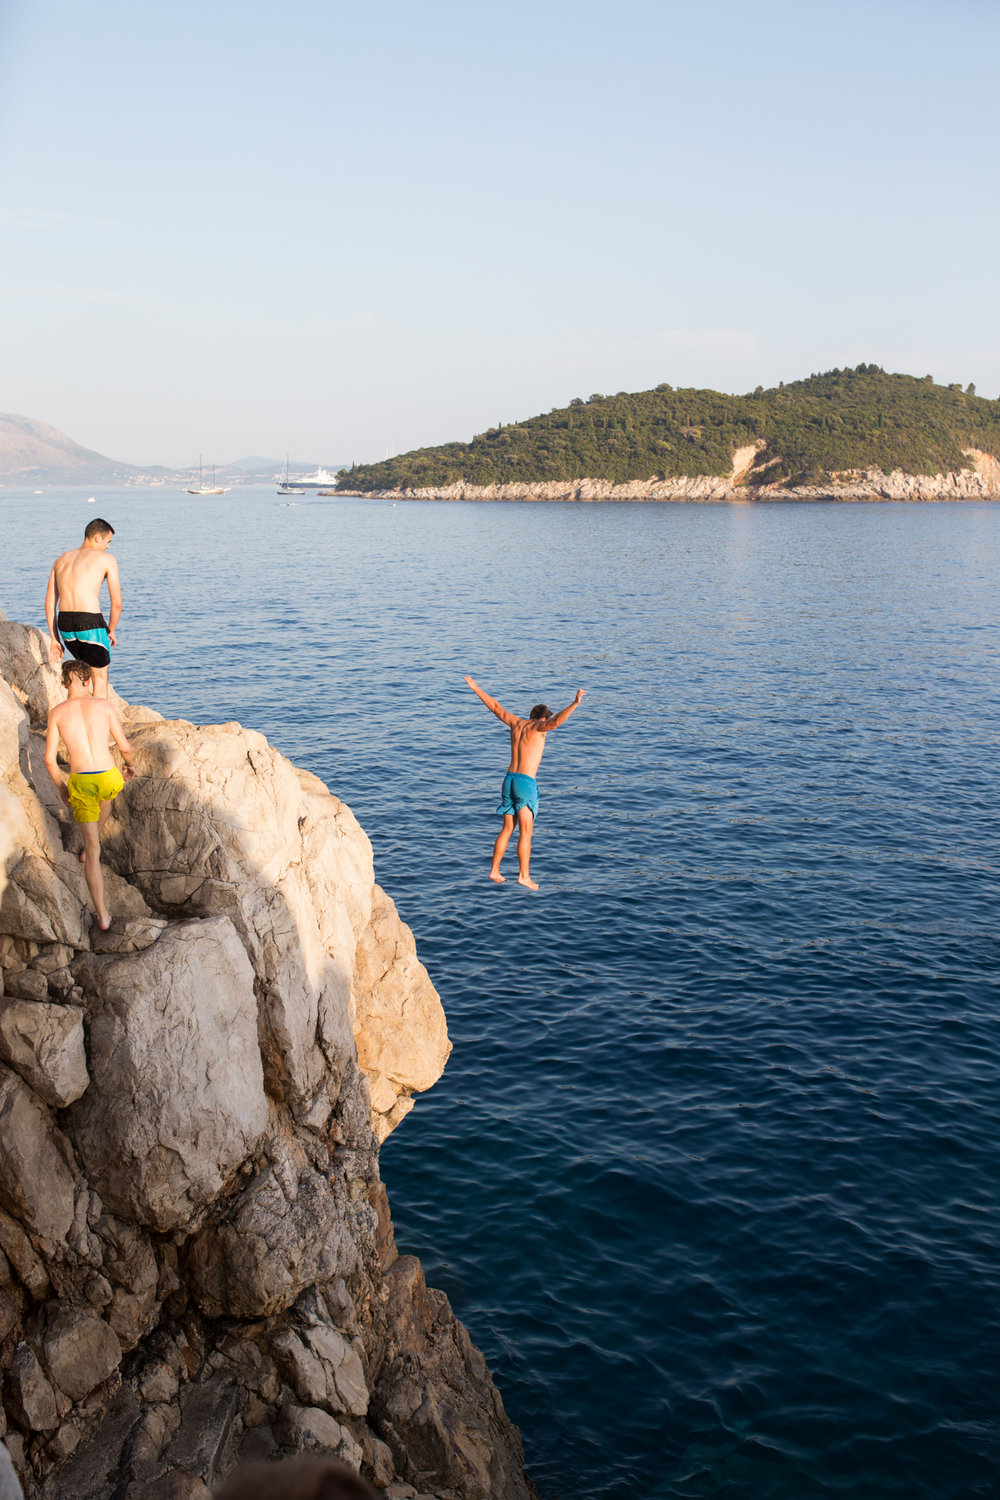 dubrovnik-croatia-dubrovnik hidden spots-dubrovnik beaches-cliff diving in dubrovnik-cliff diving in croatia-arose travels-alina mendoza-9645.jpg